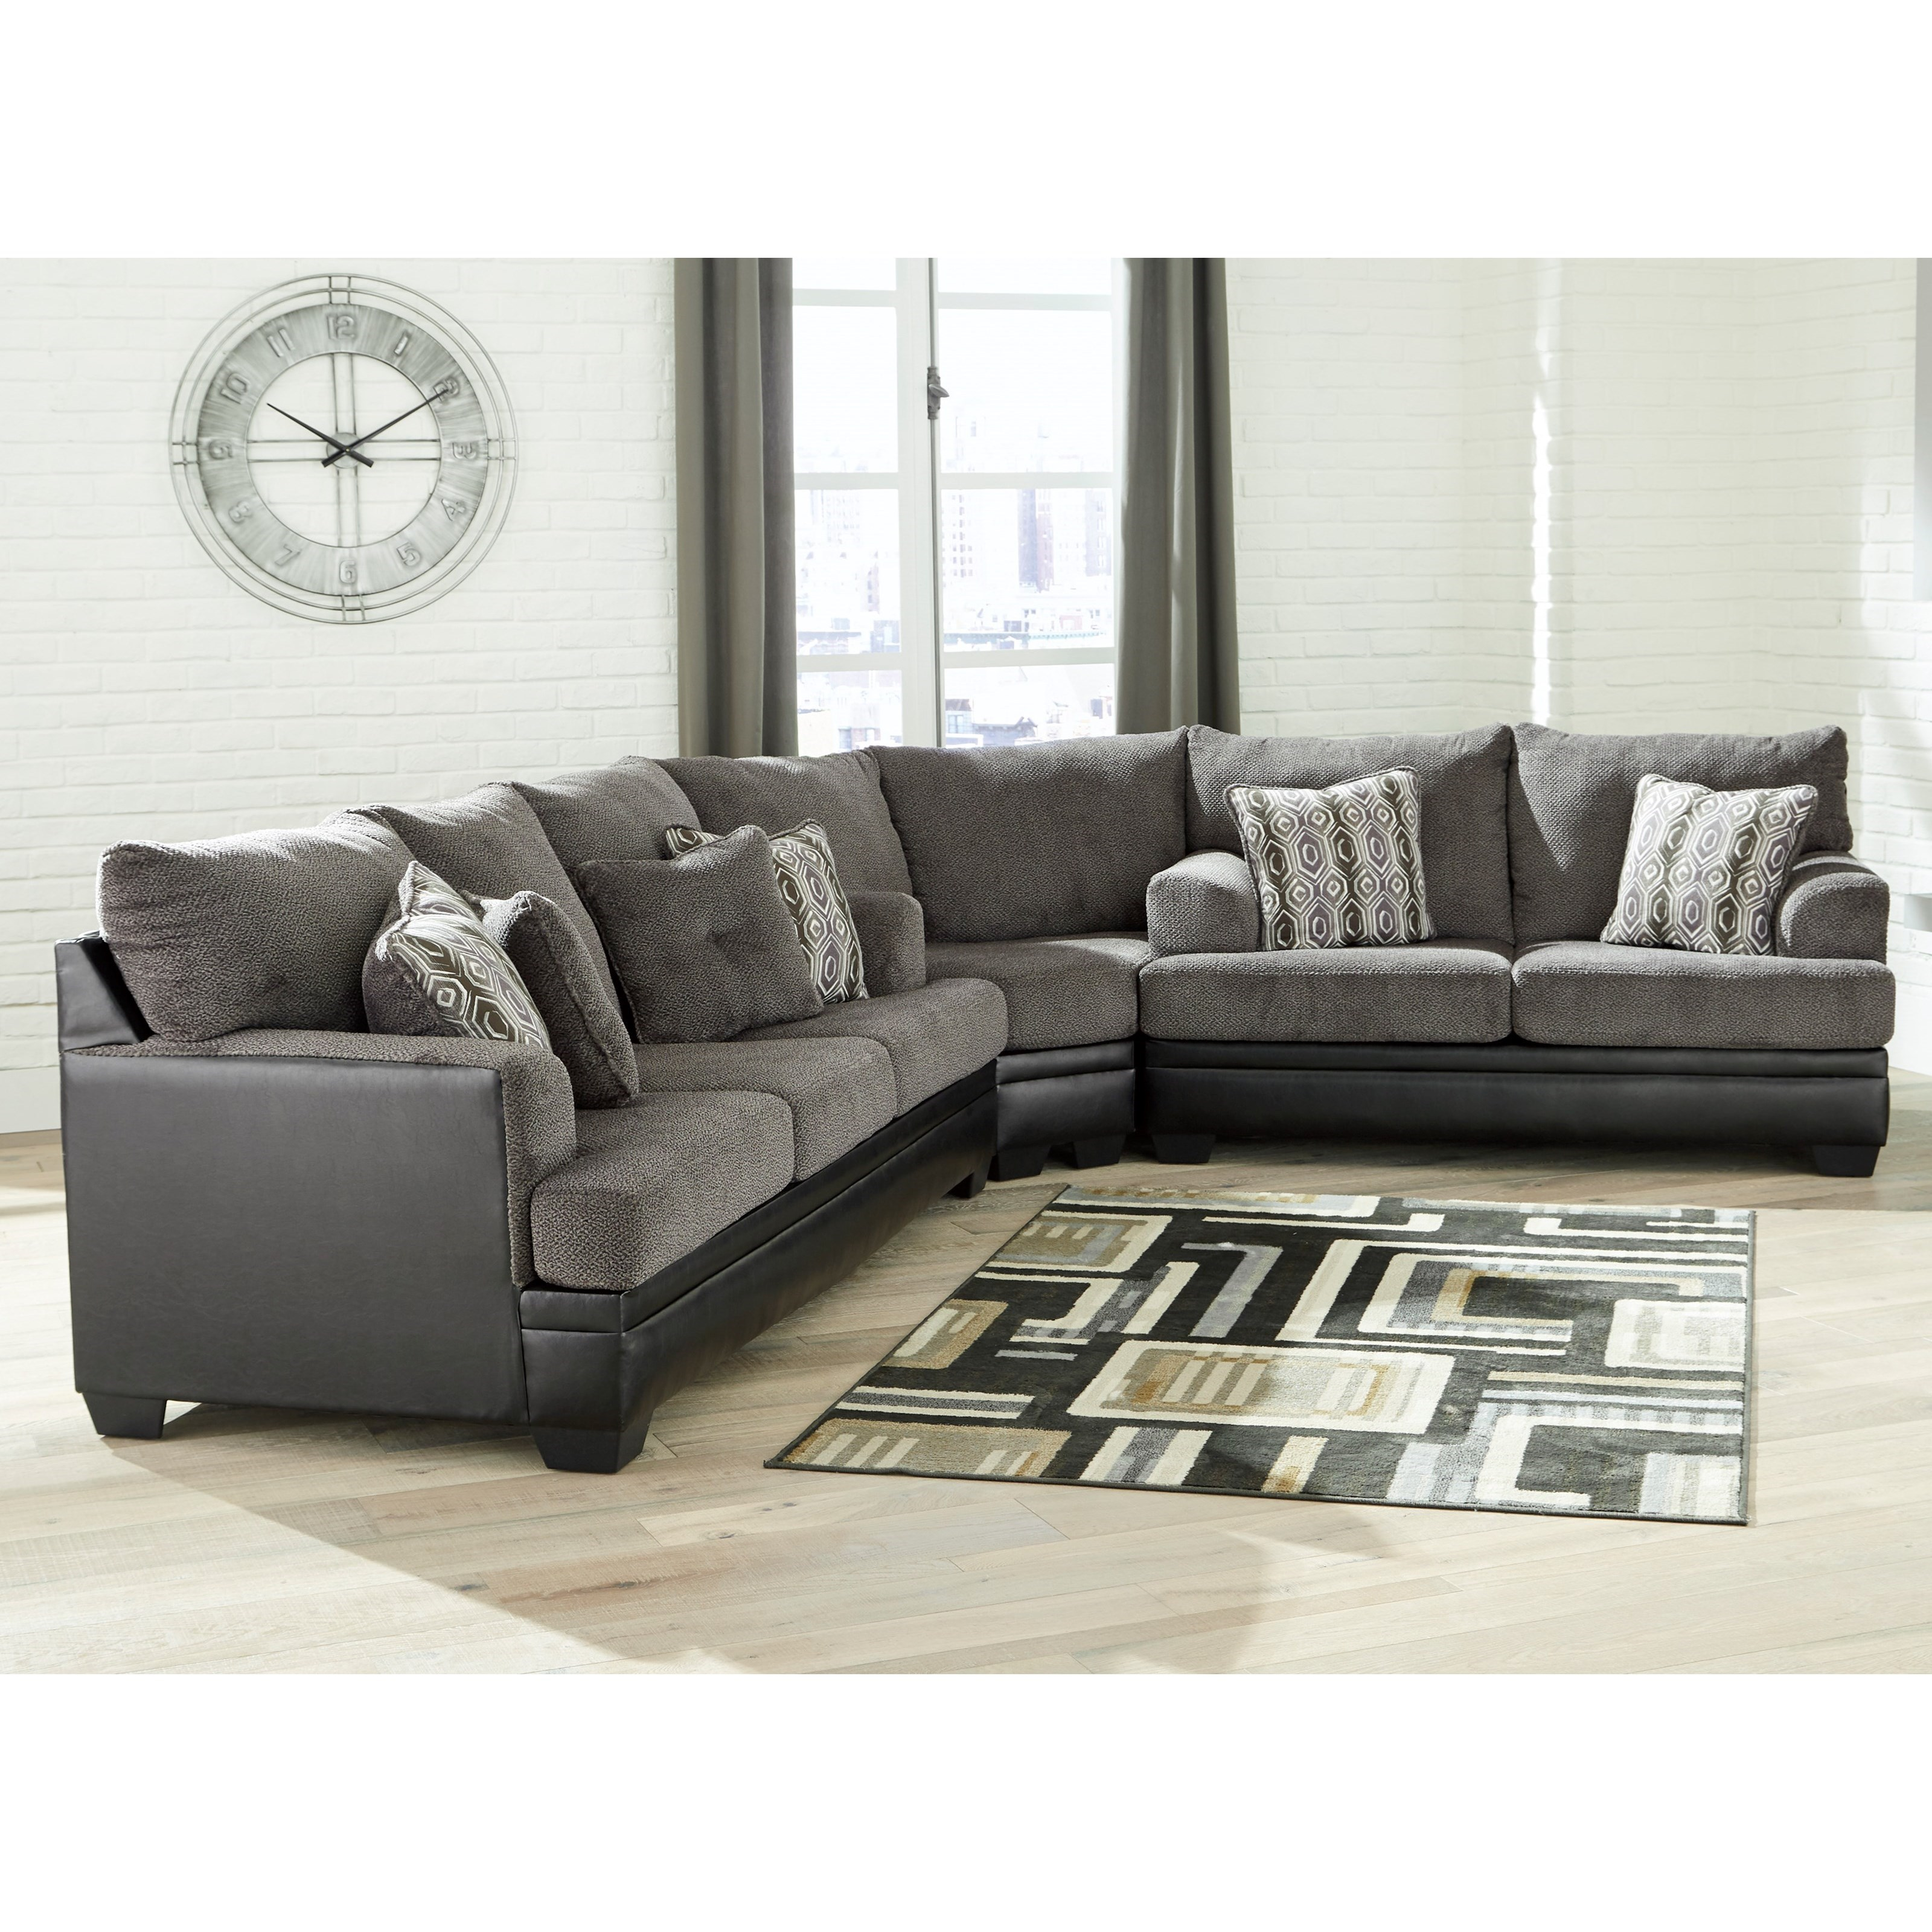 Contemporary Sectional: Contemporary Sectional With Sleeper Sofa By Signature